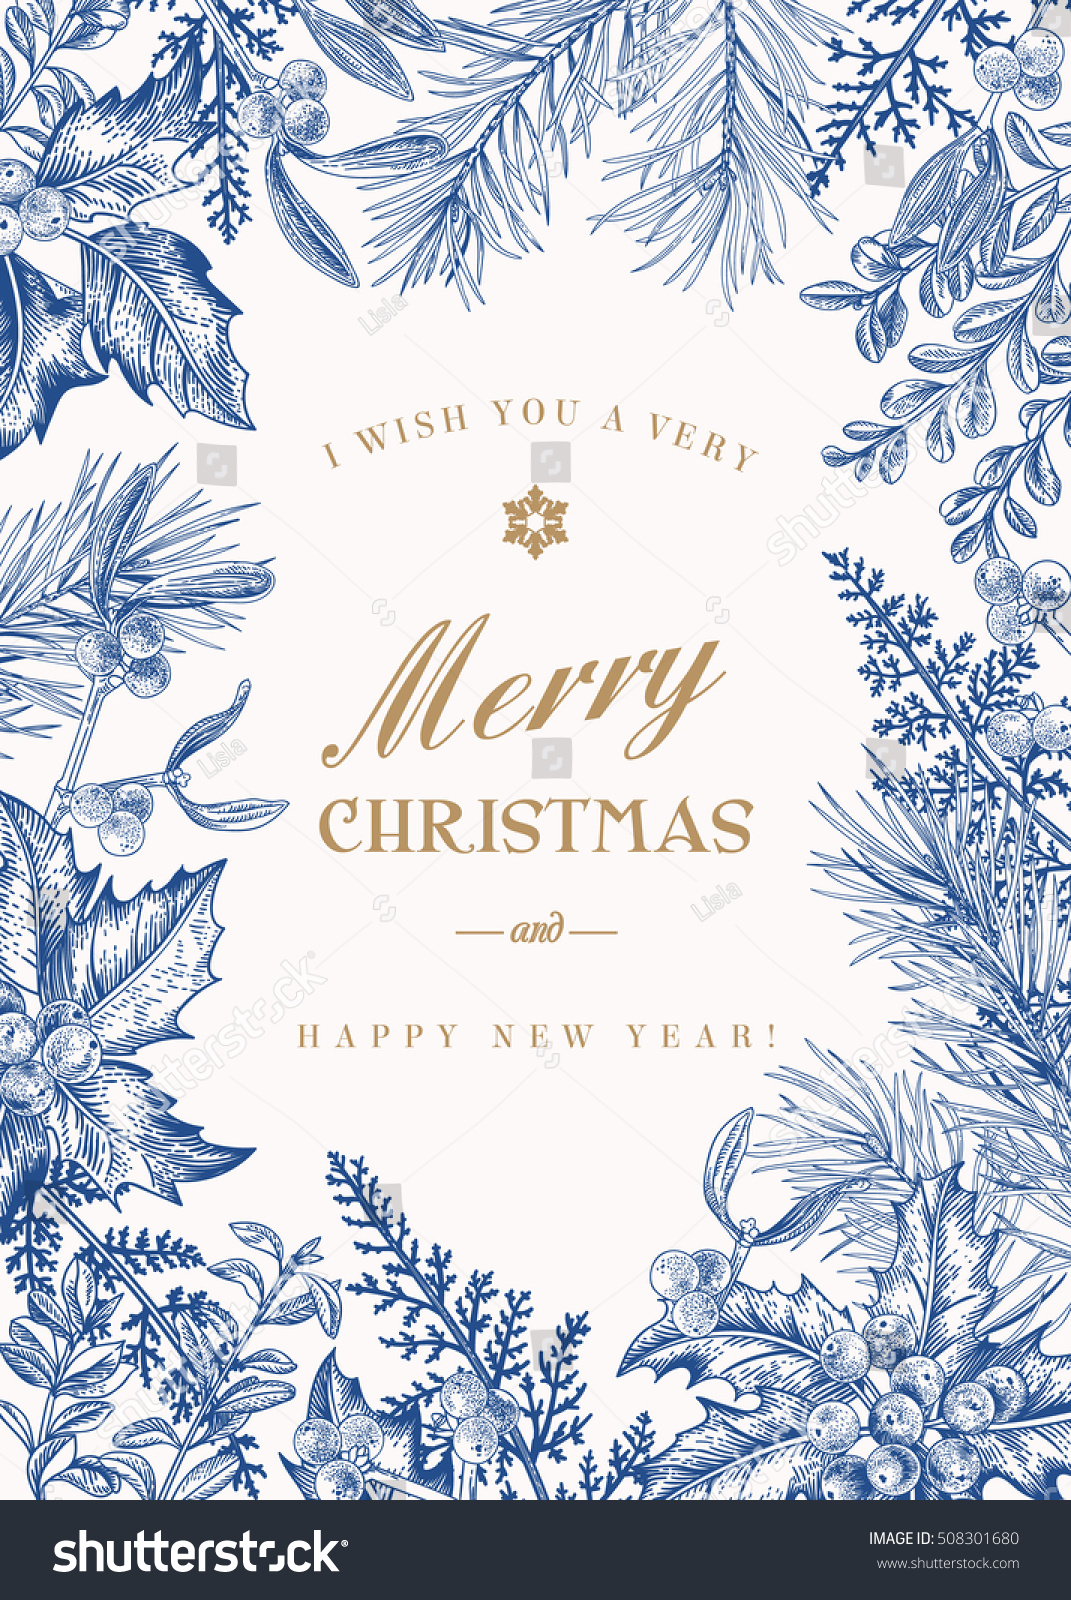 greeting christmas card vintage style winter stock vector